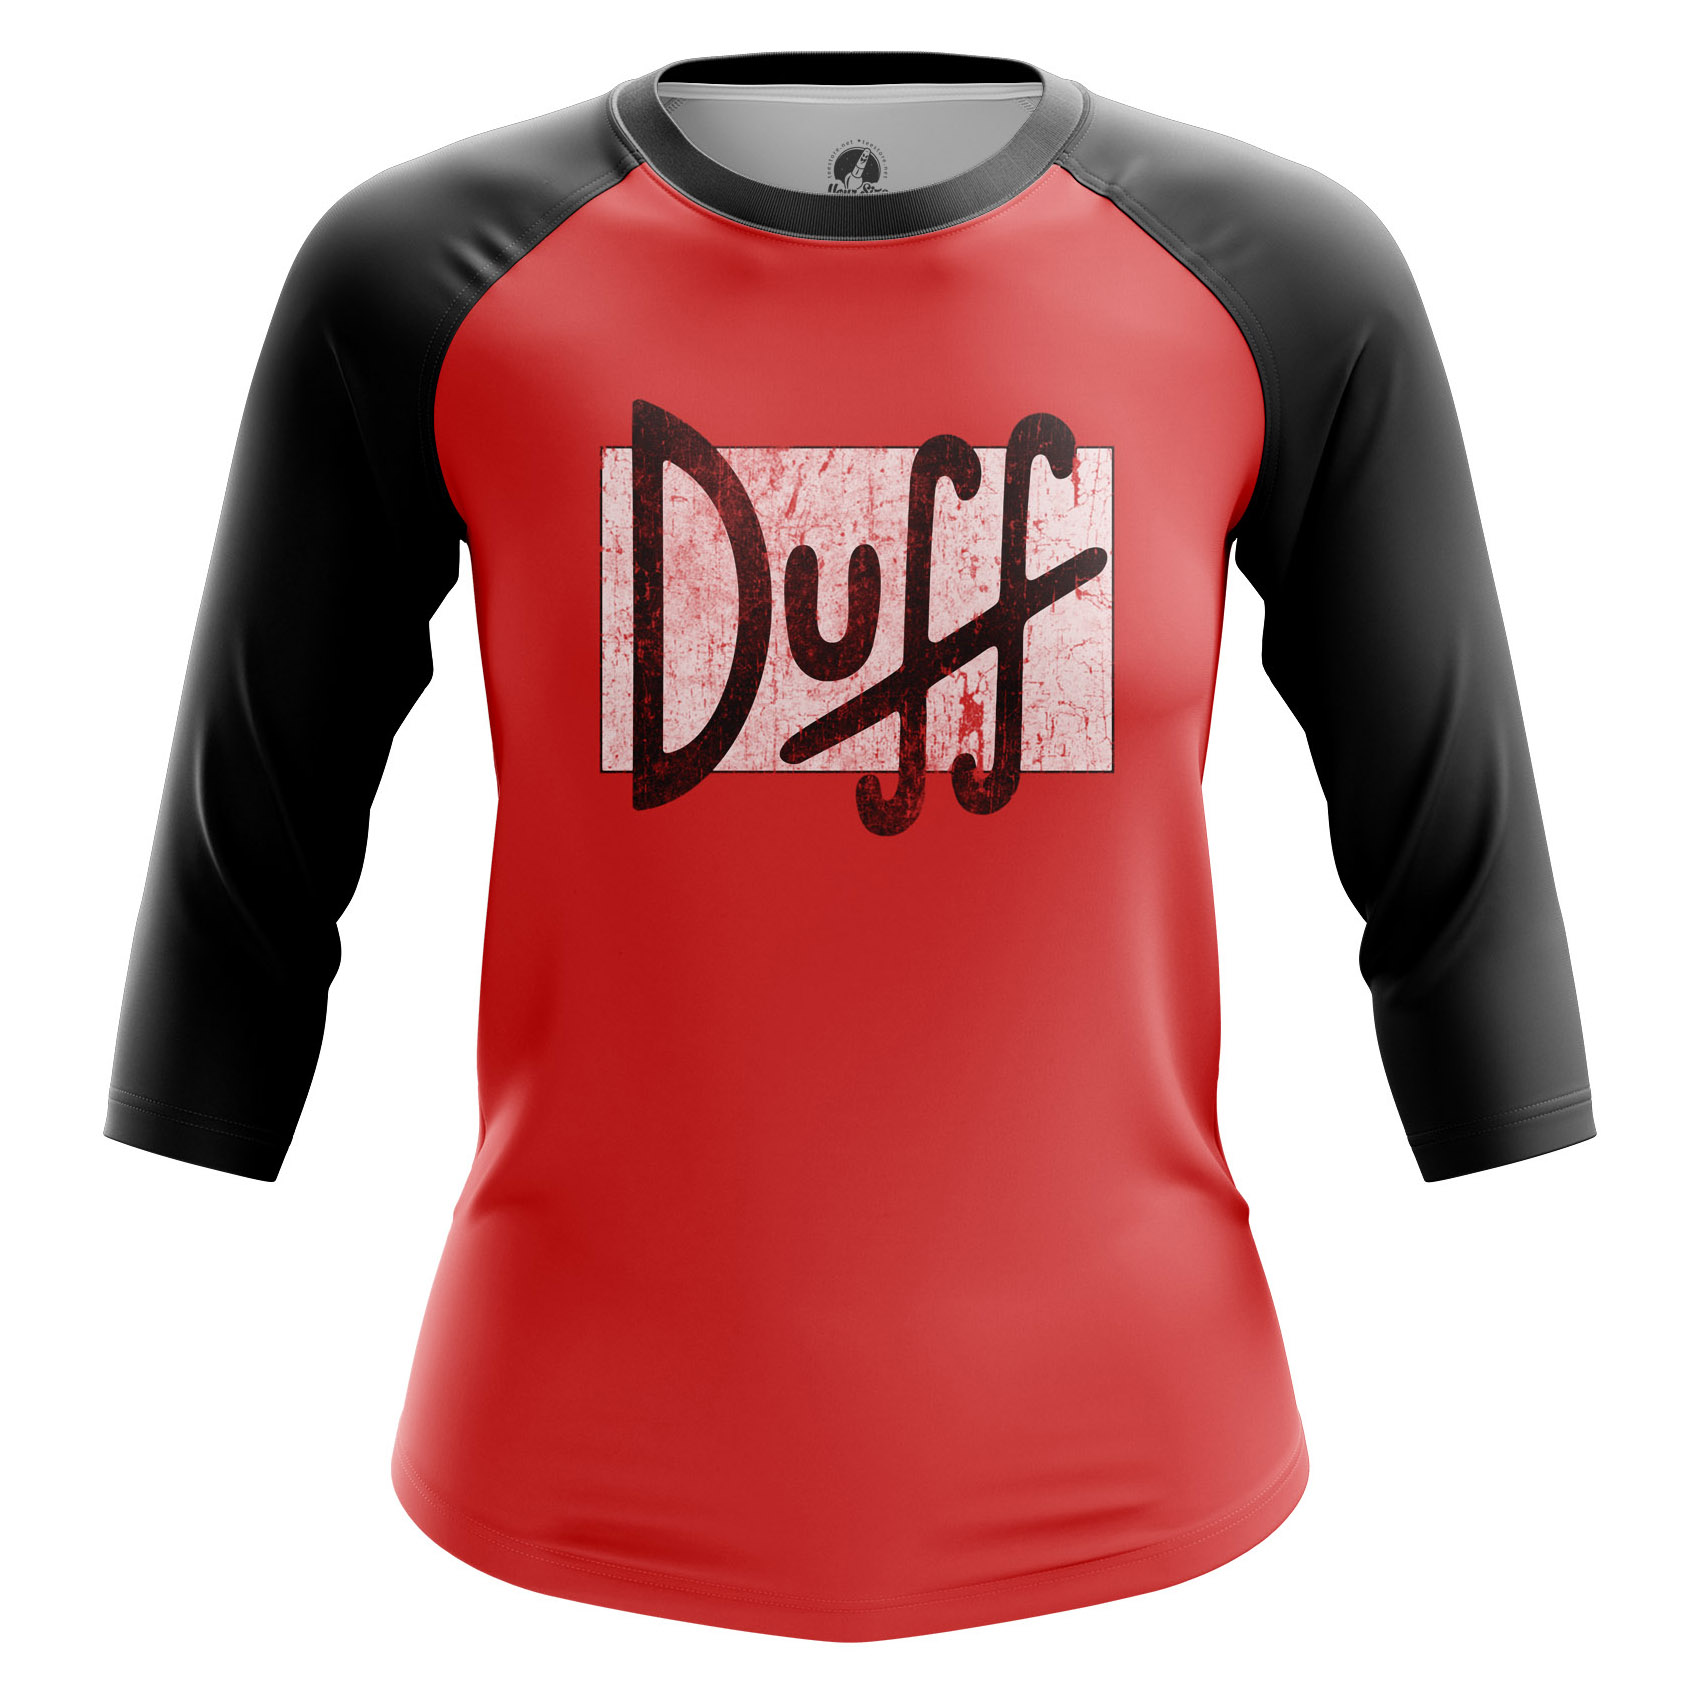 Collectibles Women'S Raglan Duff The Simpsons Red